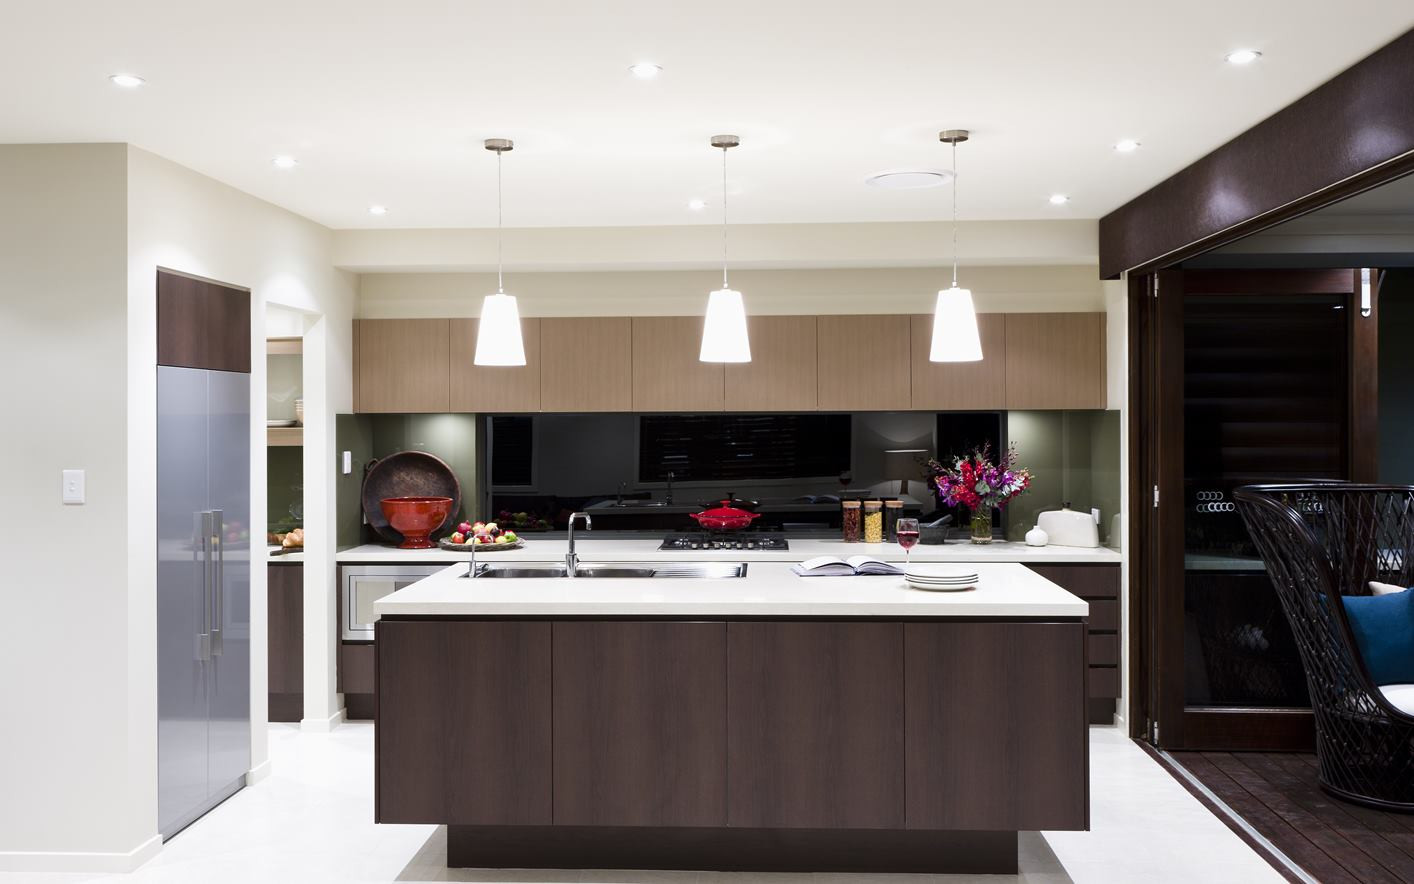 Kitchen - C dark wood - U wood - B white